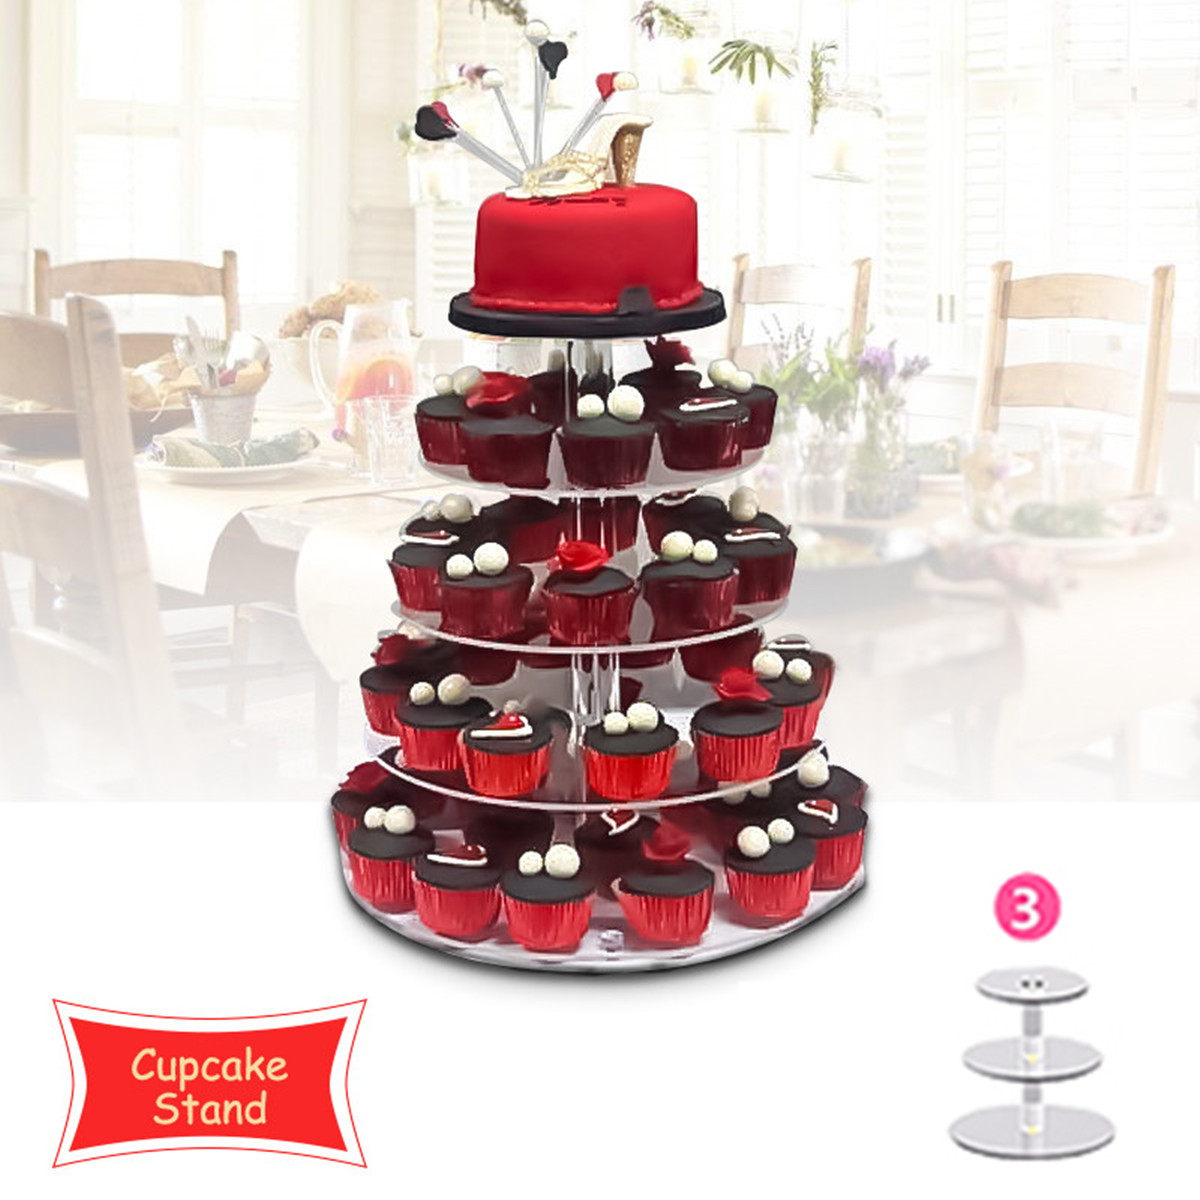 3 Tier Round Crystal Clear Acrylic Cupcake Tower Stand Wedding Display